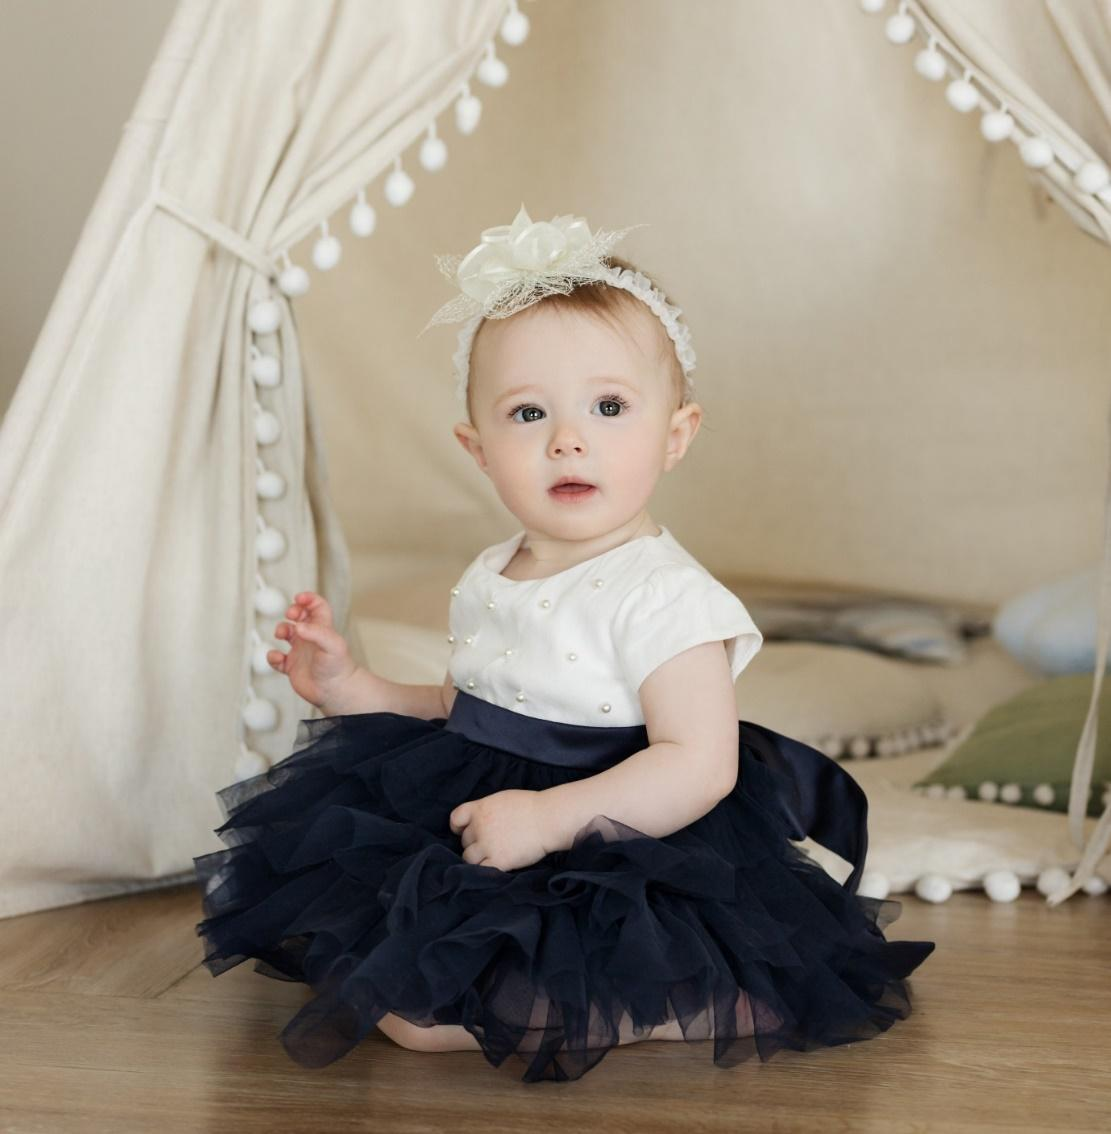 A royal like baby posing for the camera